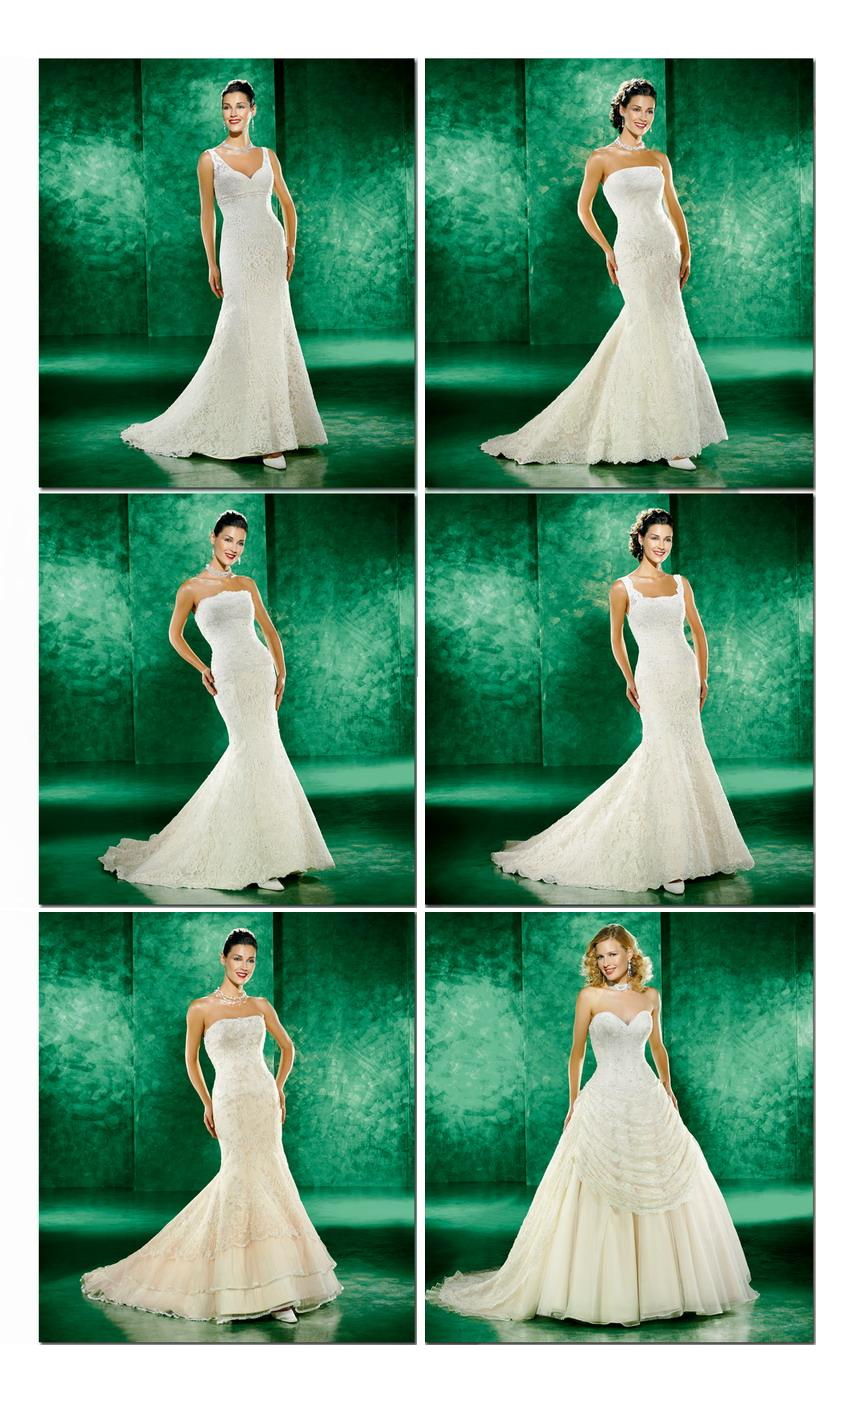 Beautiful cream colored wedding dresses with trains